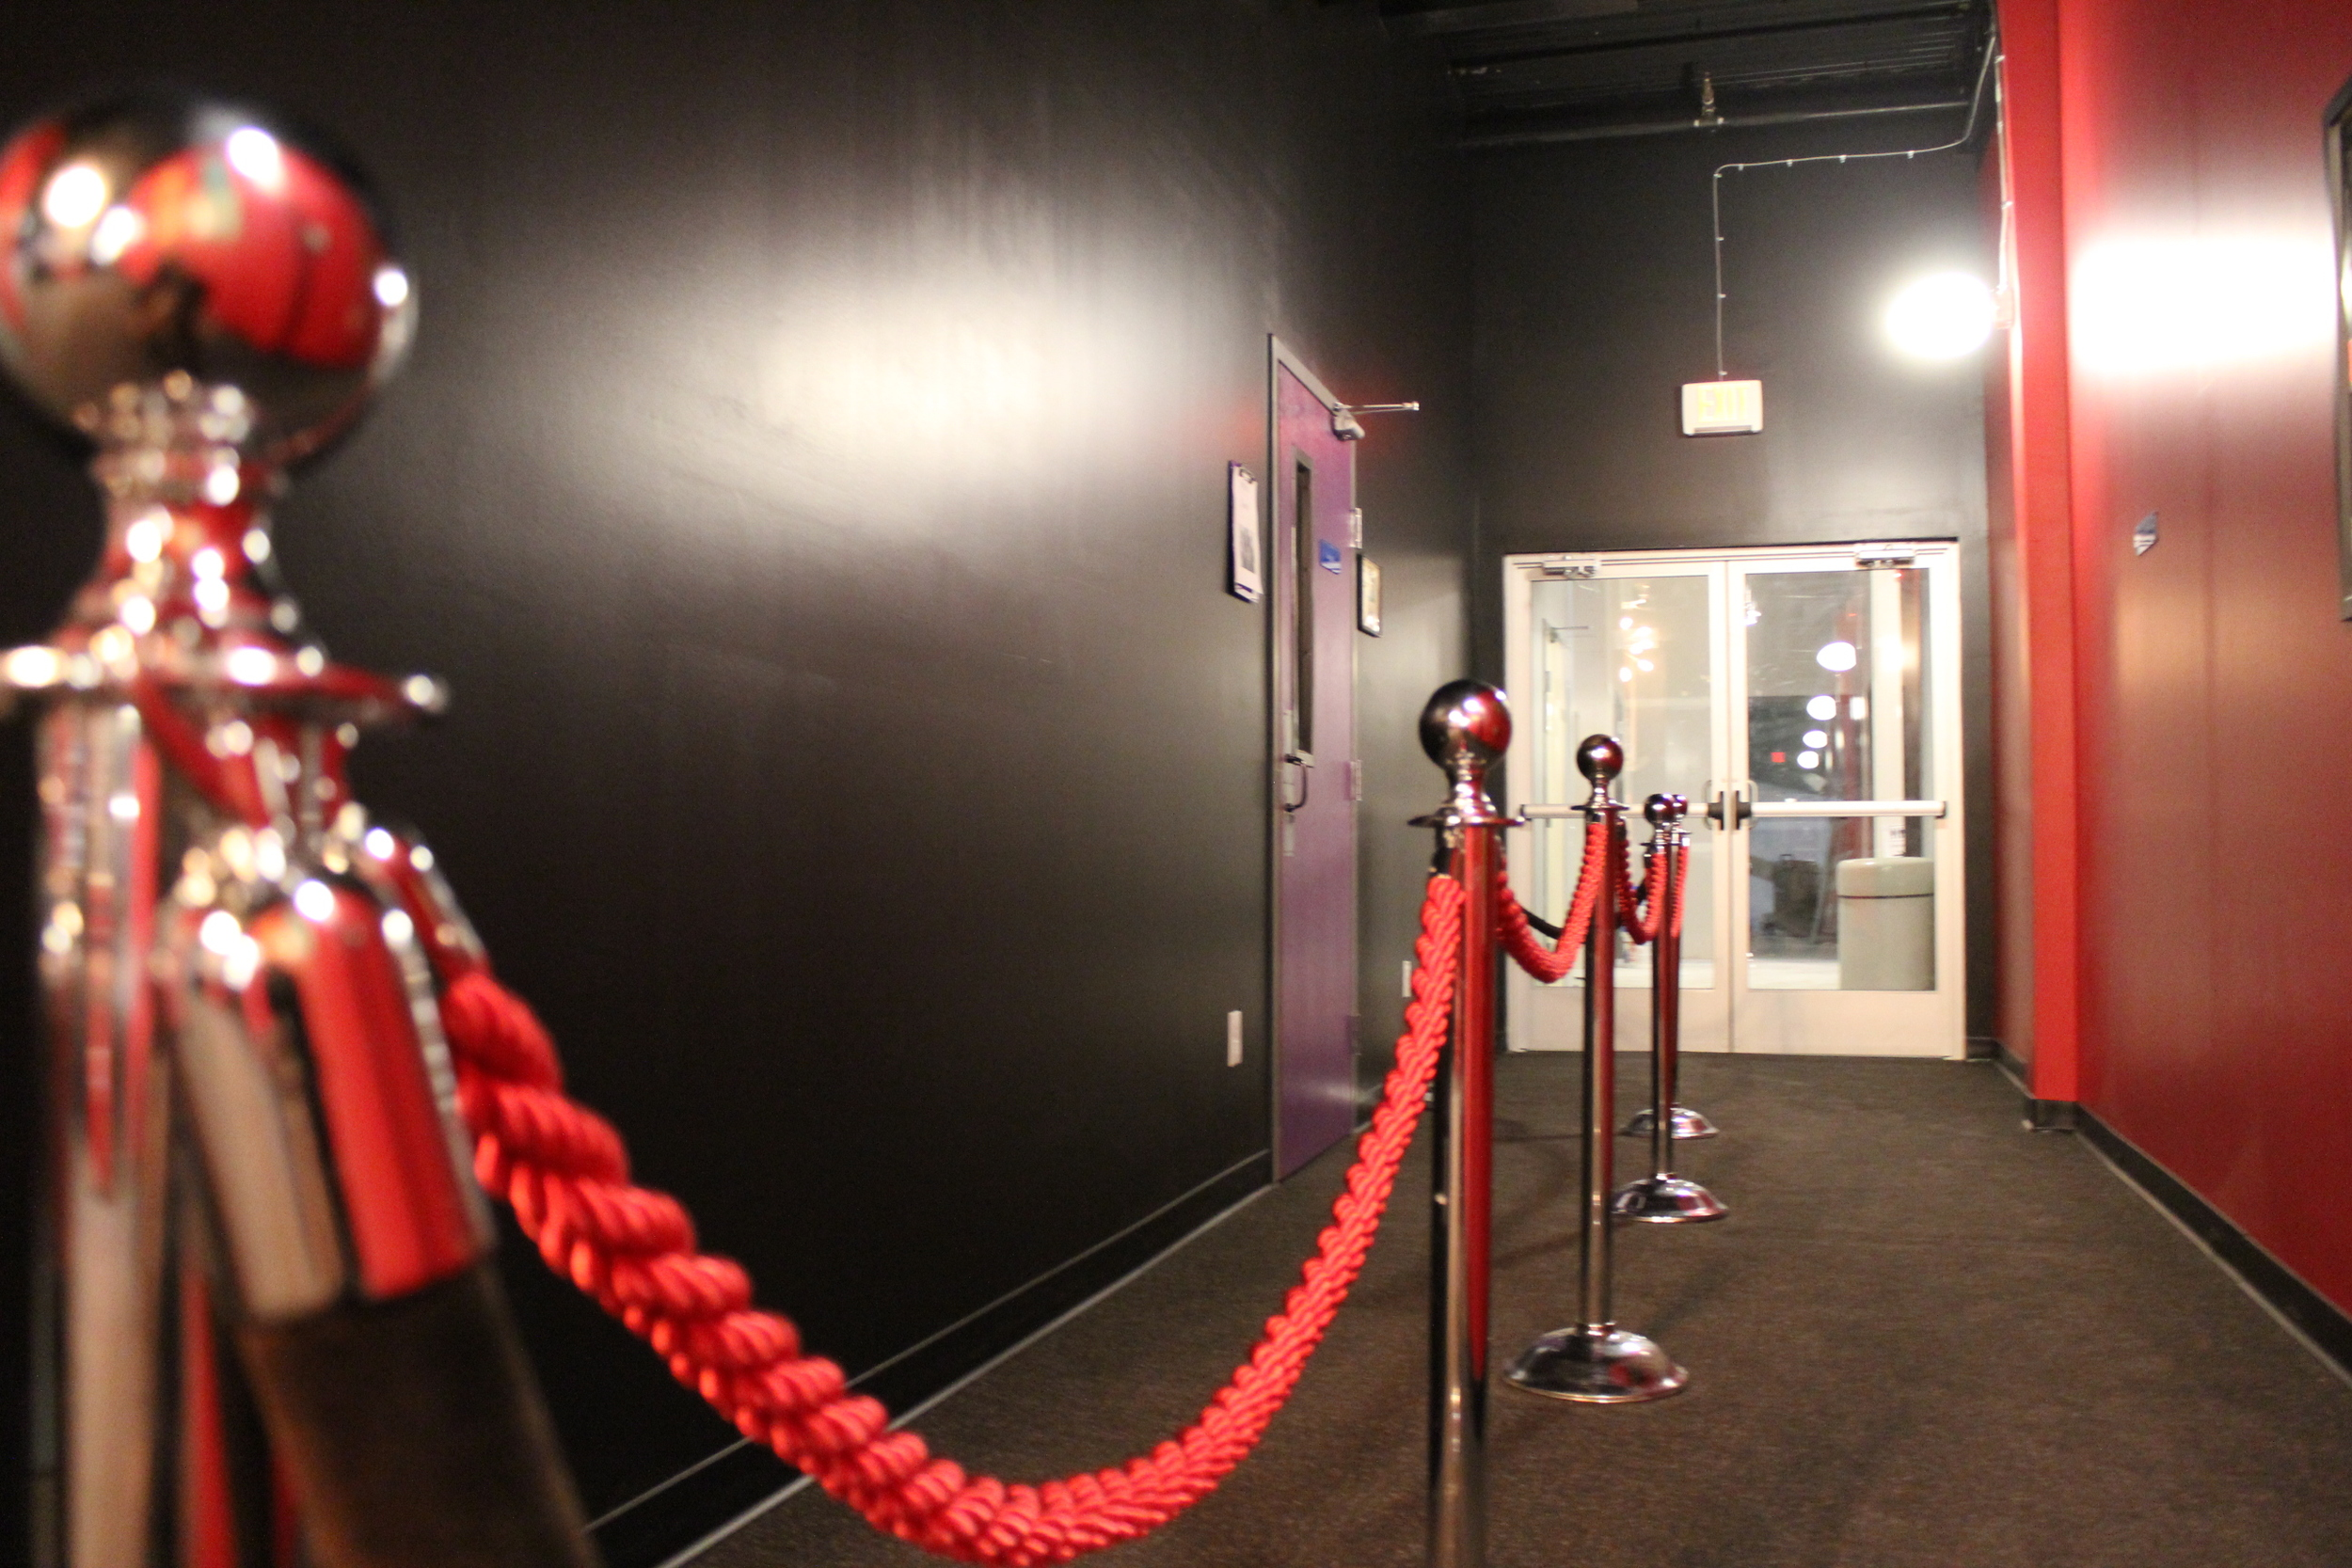 Picture of hallway over stantions with red rope